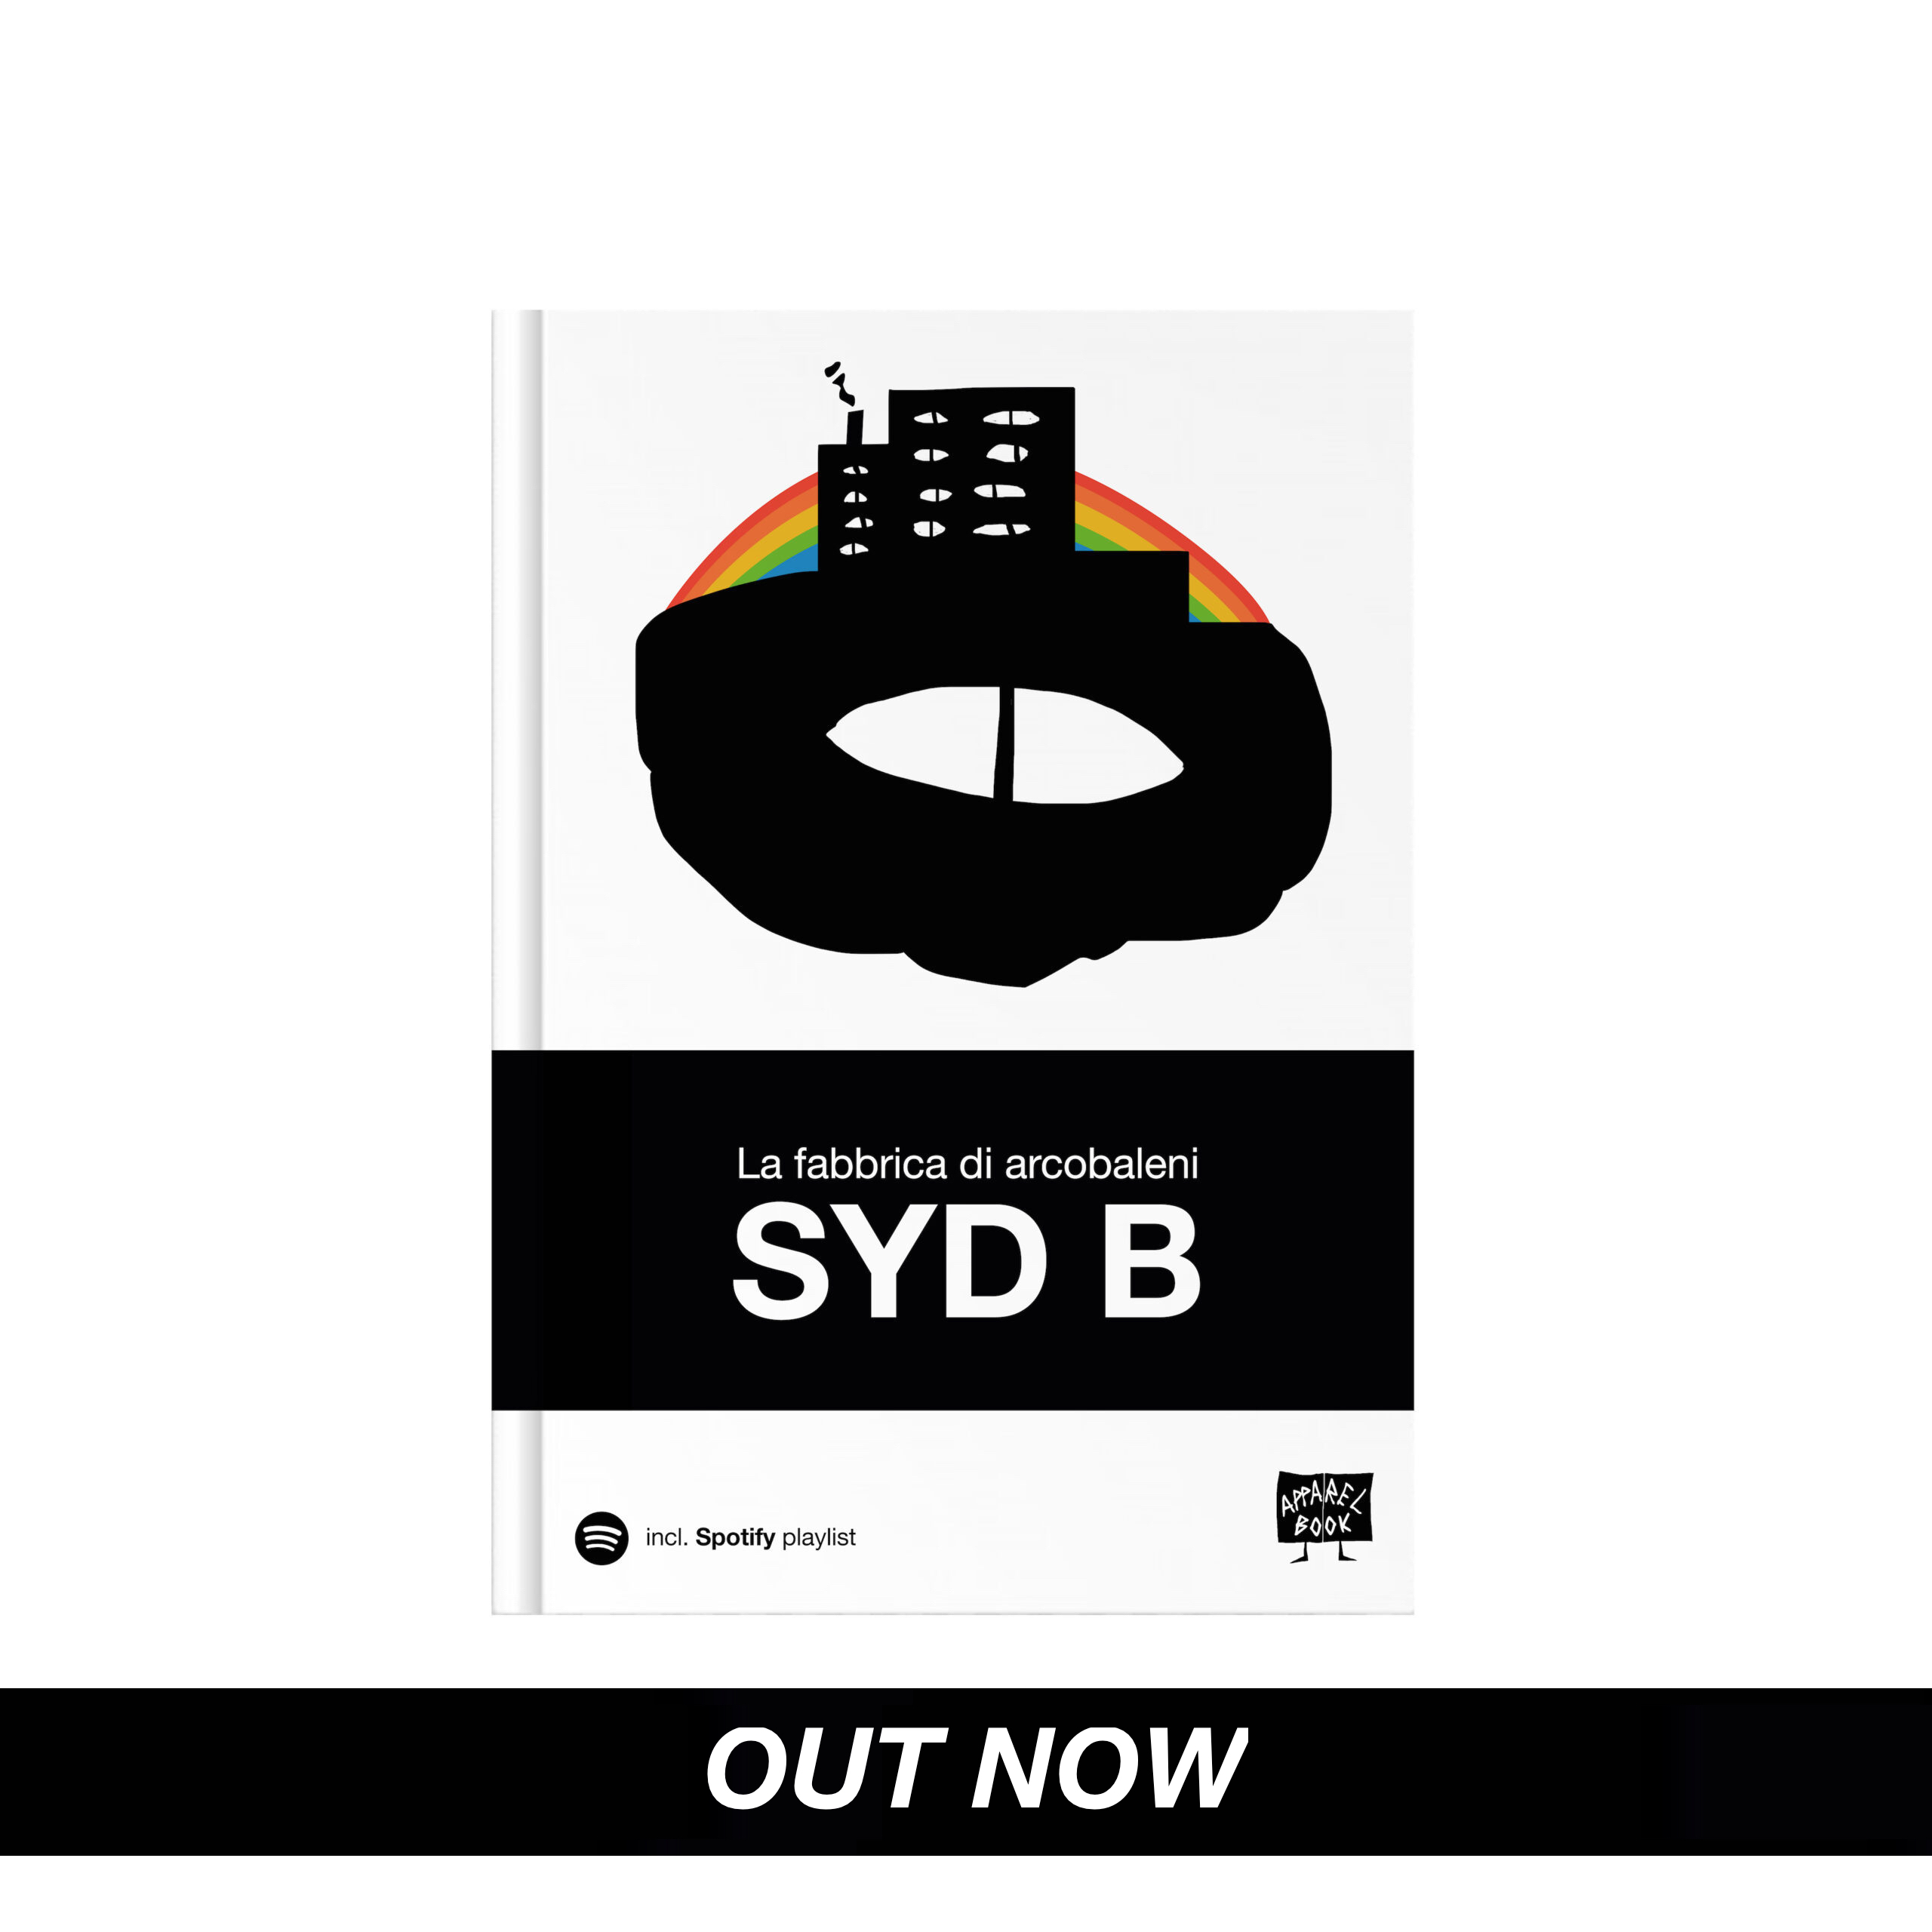 Out now 'La fabbrica di Arcobaleni' by Syd B